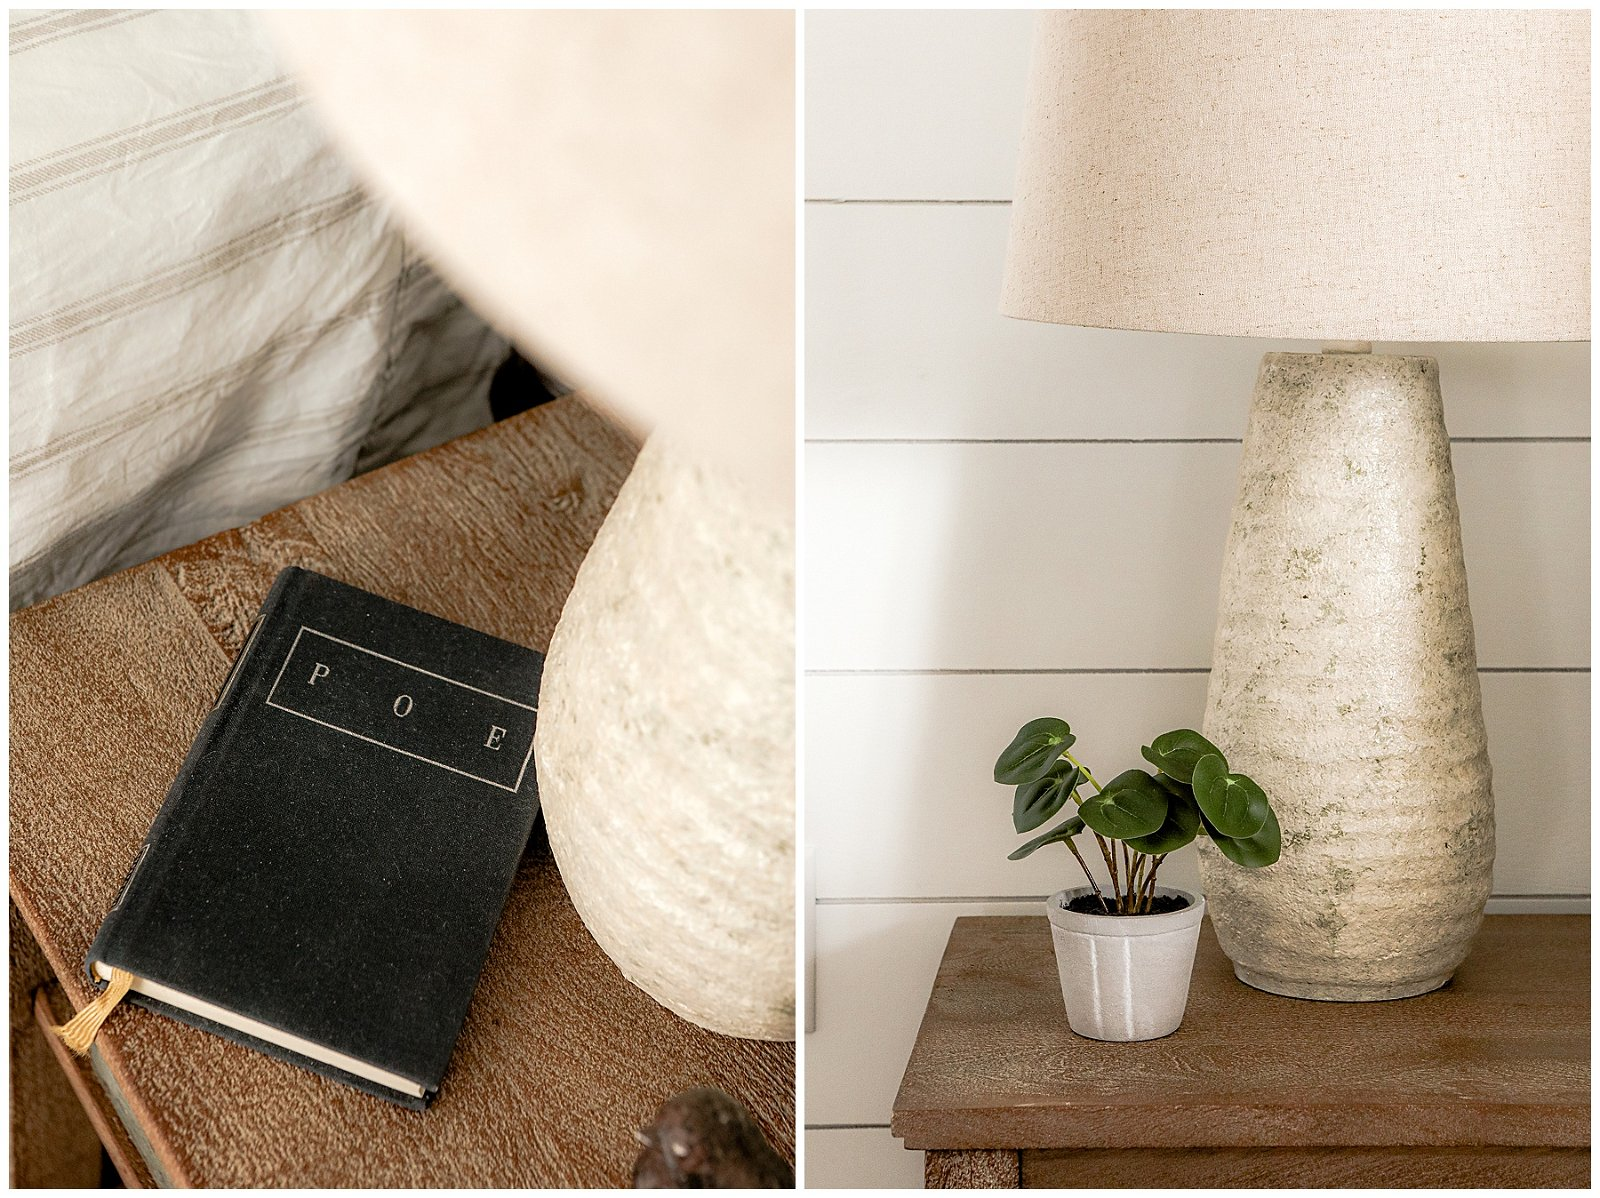 book on a nightstand